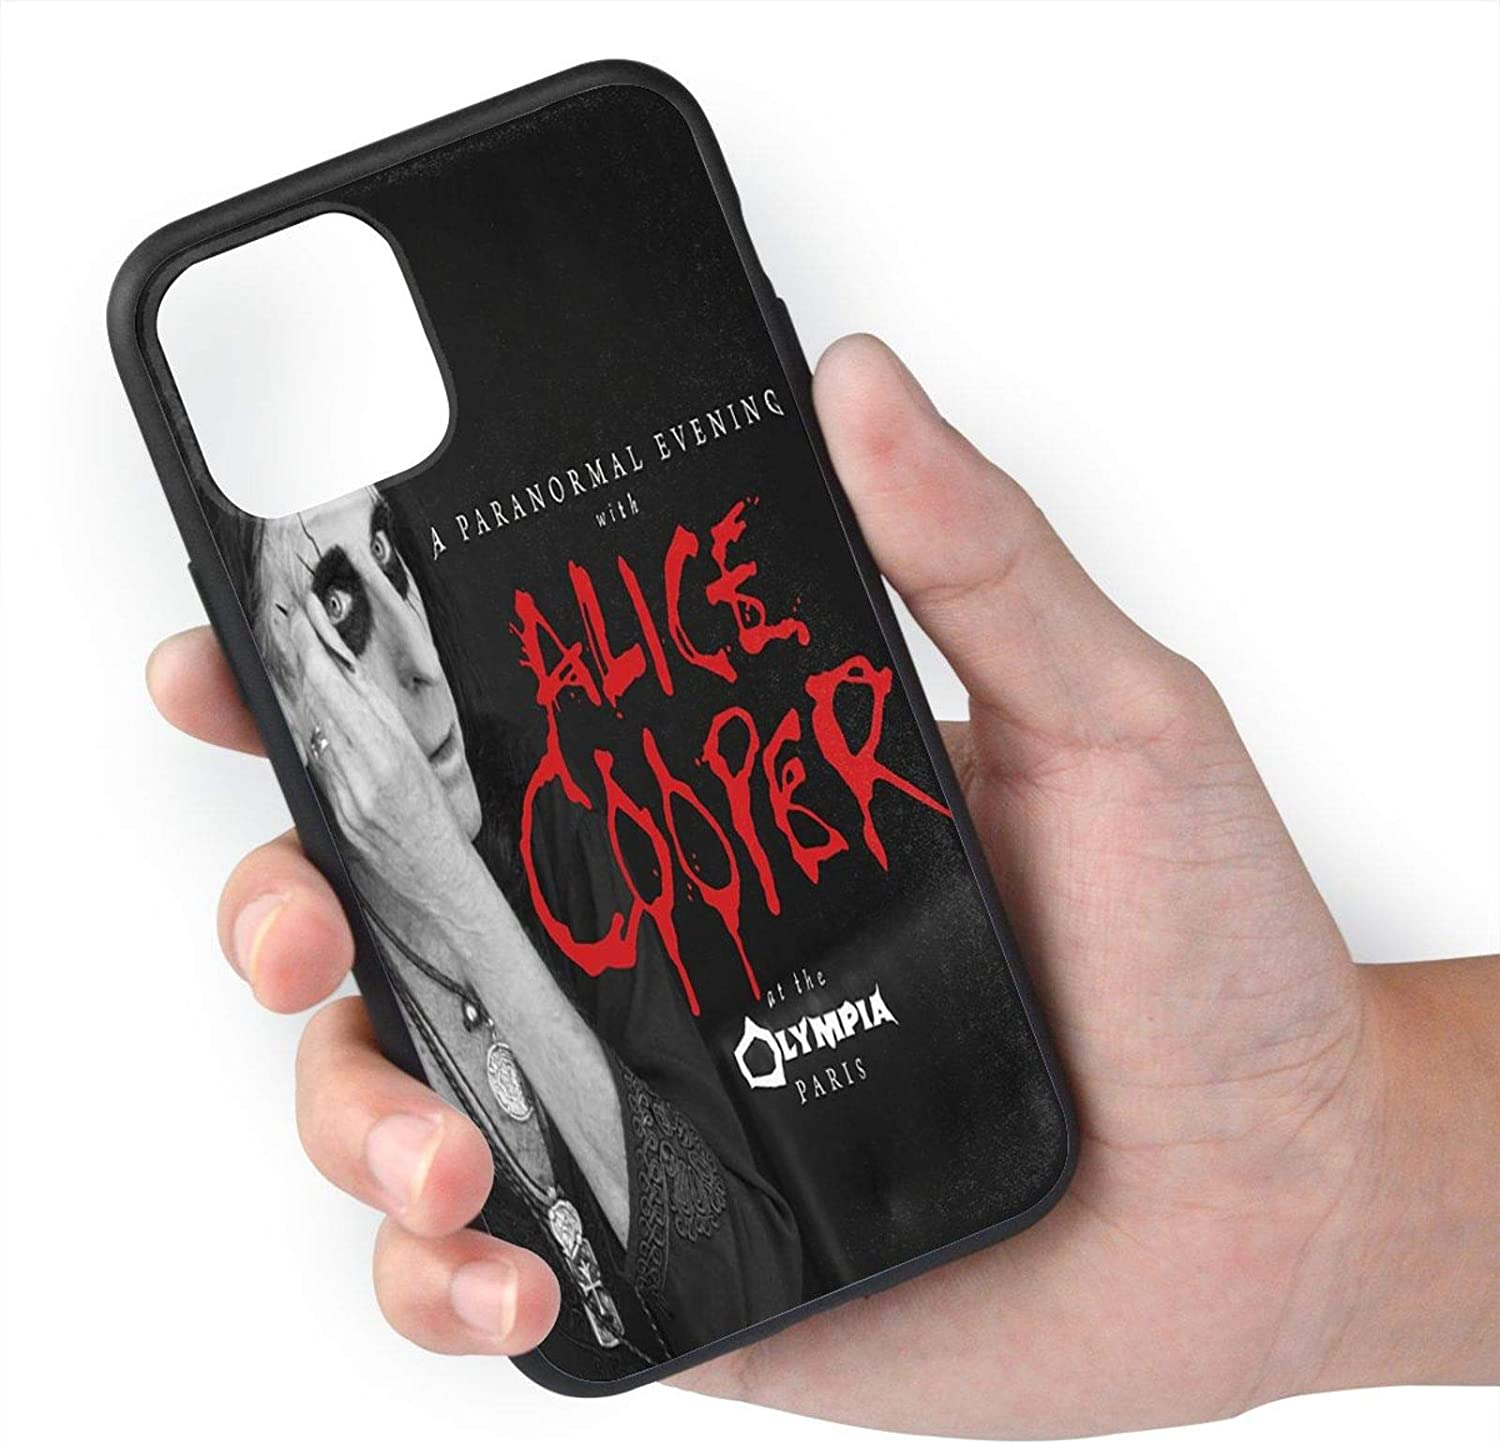 Cfgerends Alice Cooper A Paranormal Evening Fashion iPhone 11 case Man Women Personalized iPhone 11 Pro max Cases iPhone 11